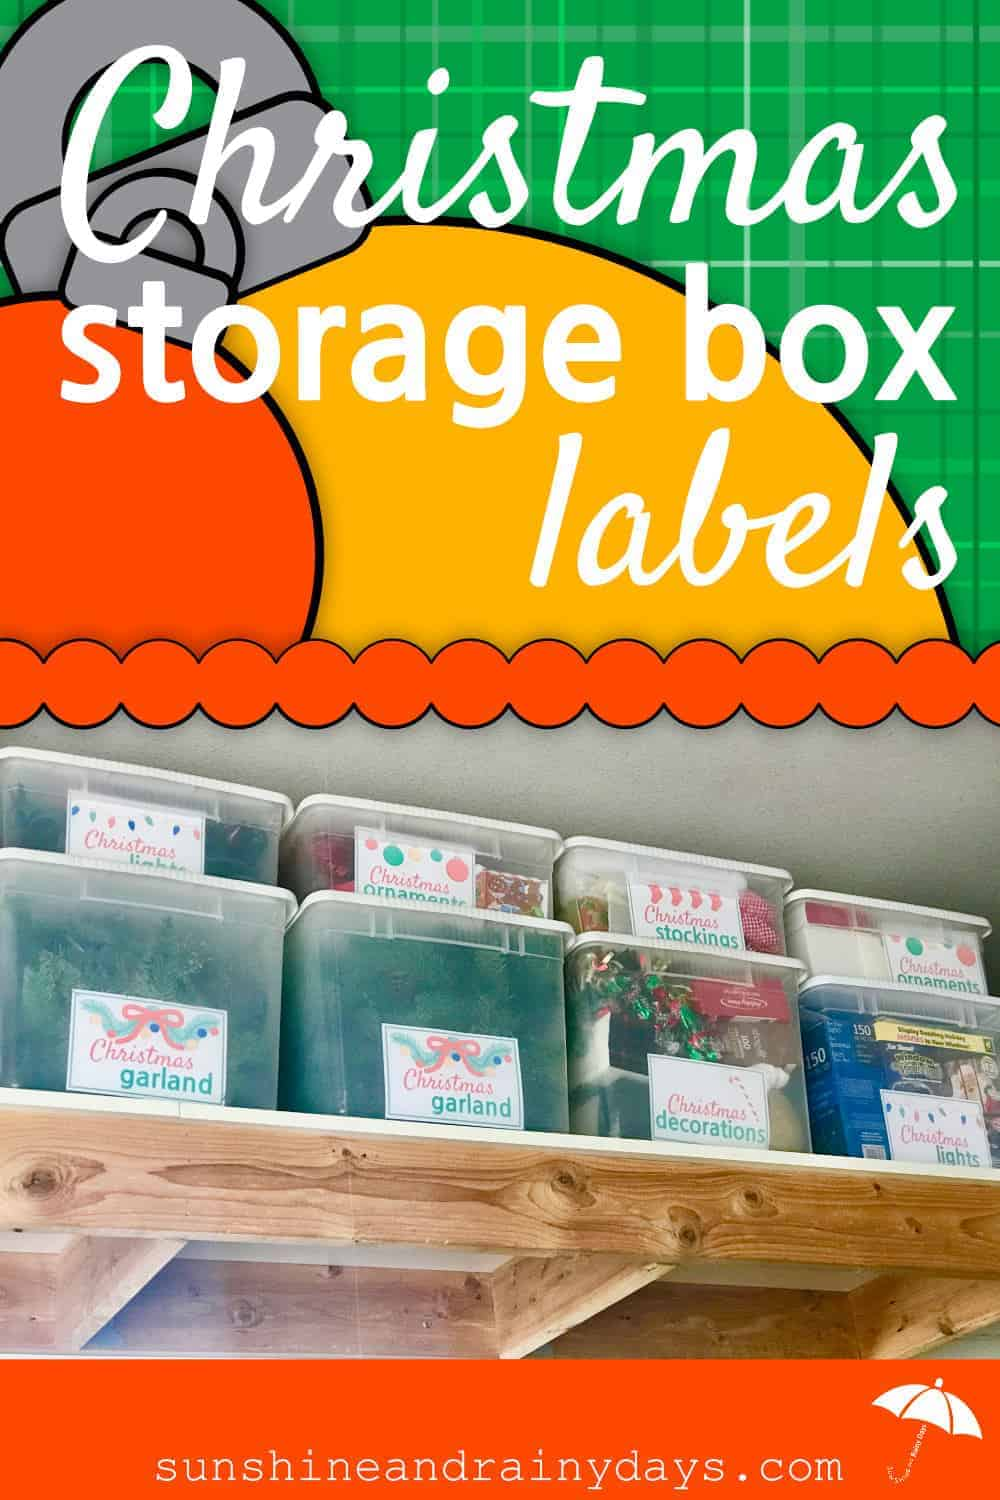 Christmas Storage Box Labels help you organize your Christmas decorations!